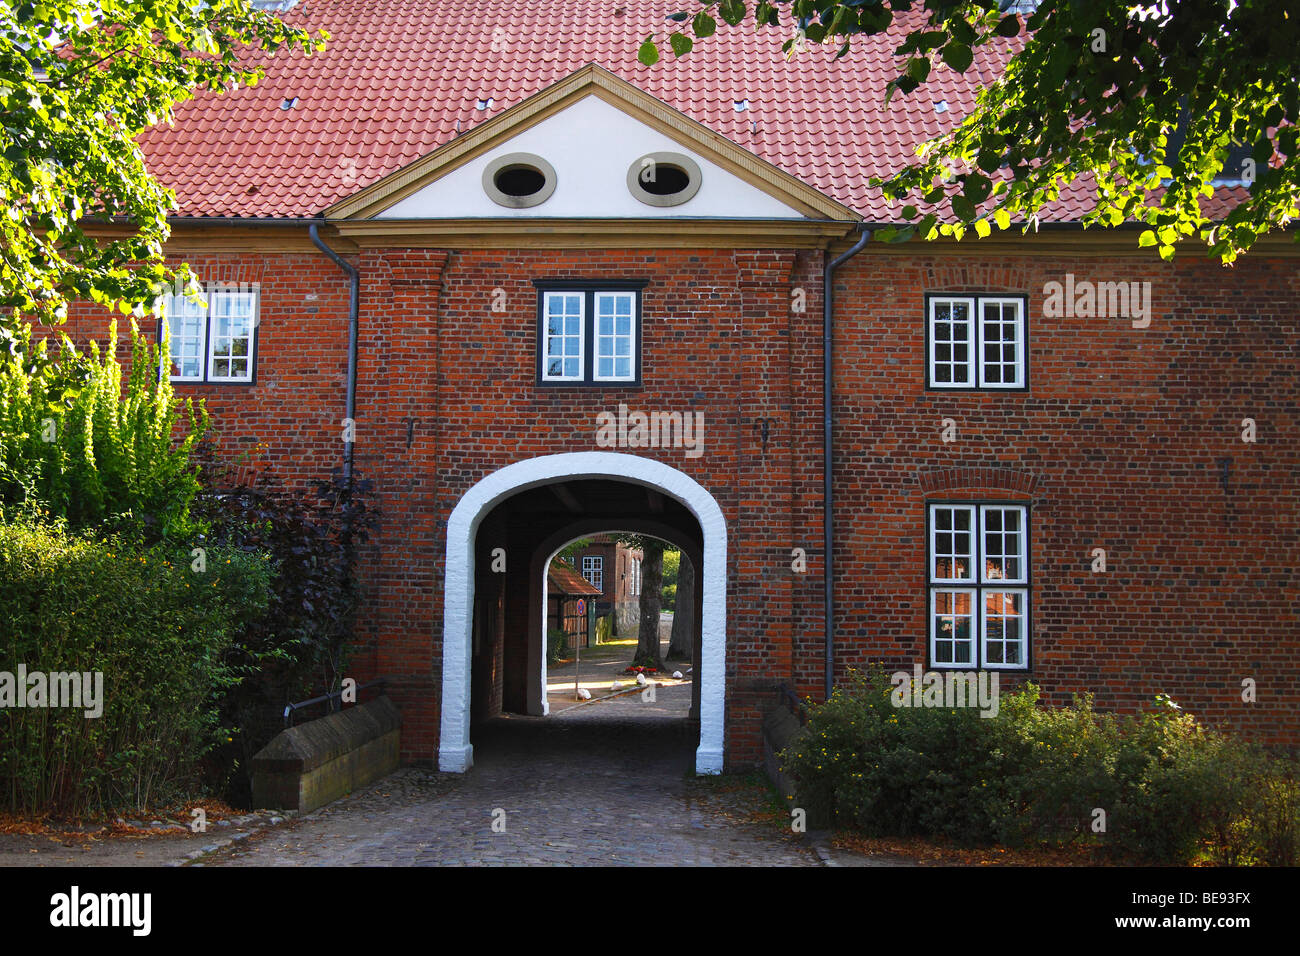 Gatehouse of the Kloster Preetz convent, entrance to the convent and minster, Preetz, Ploen, Holstein Switzerland, - Stock Image